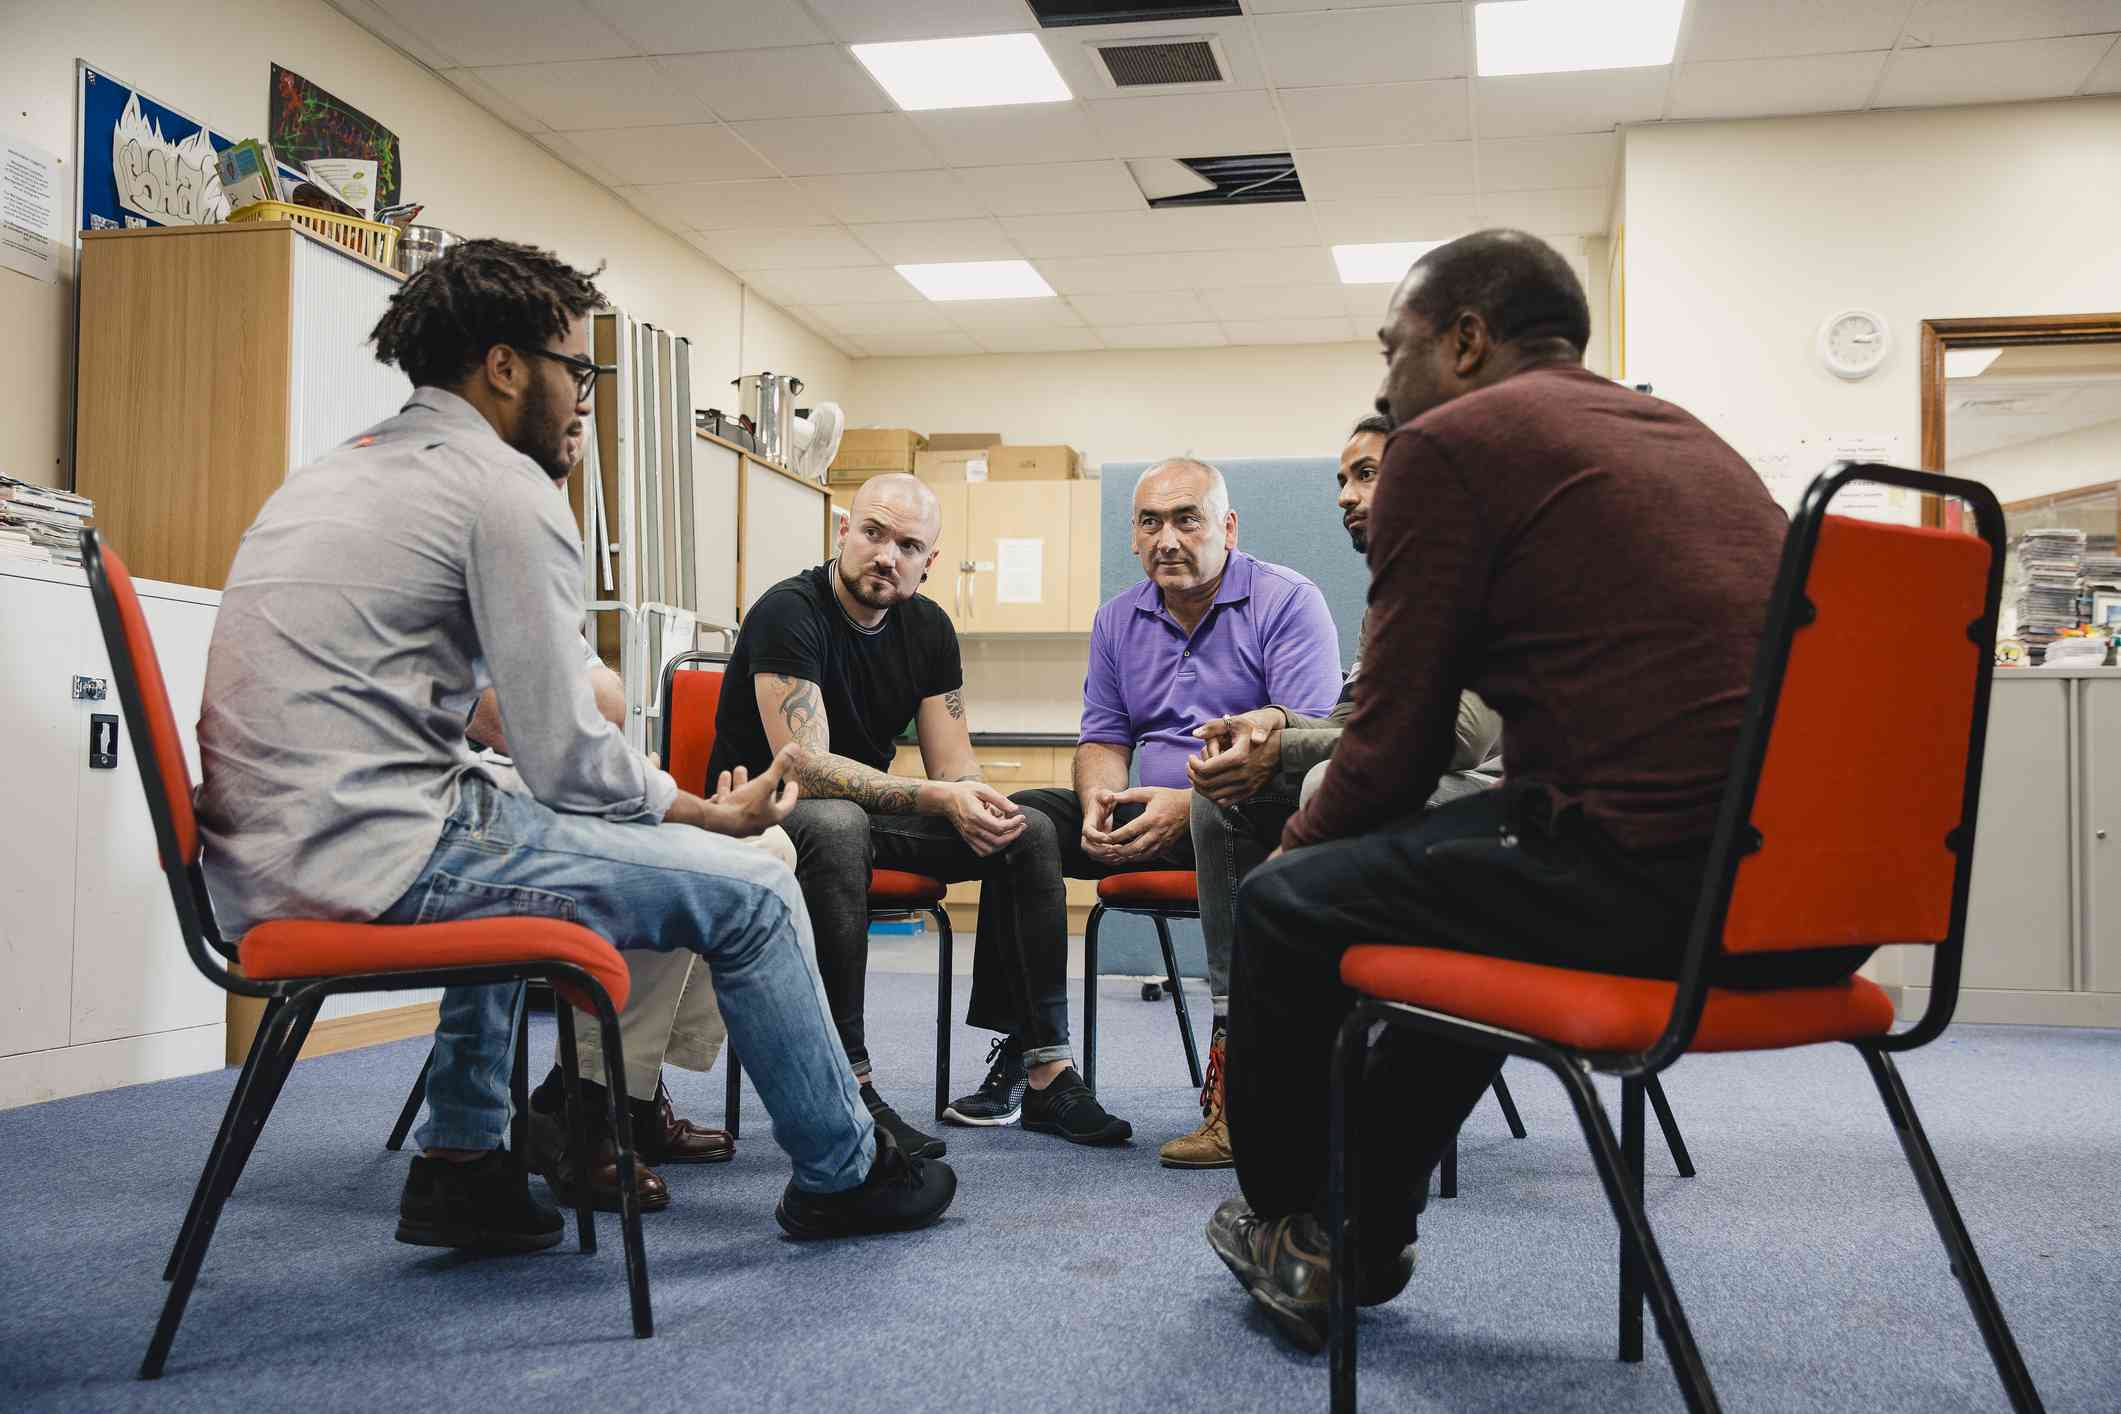 Mental health and substance abuse support group